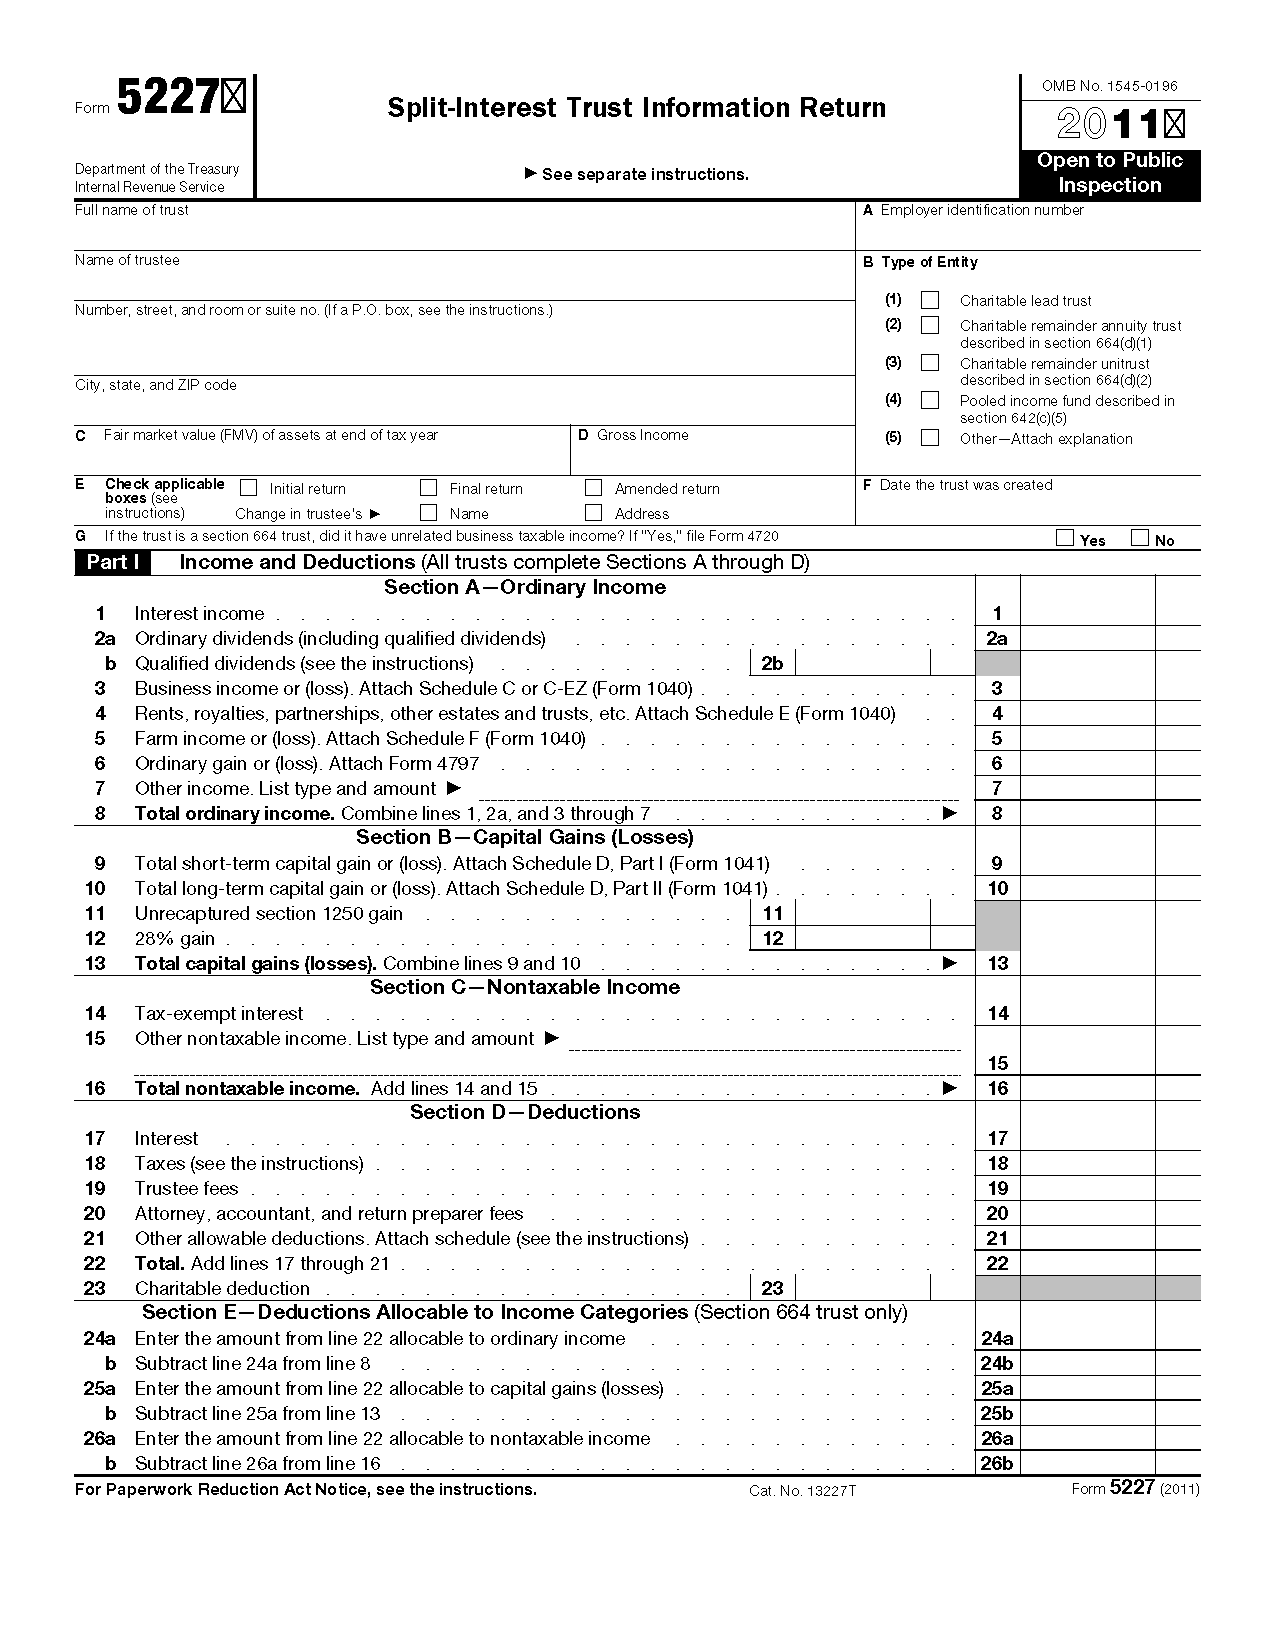 tax donation worksheet awesome donations list template yeniscale ...